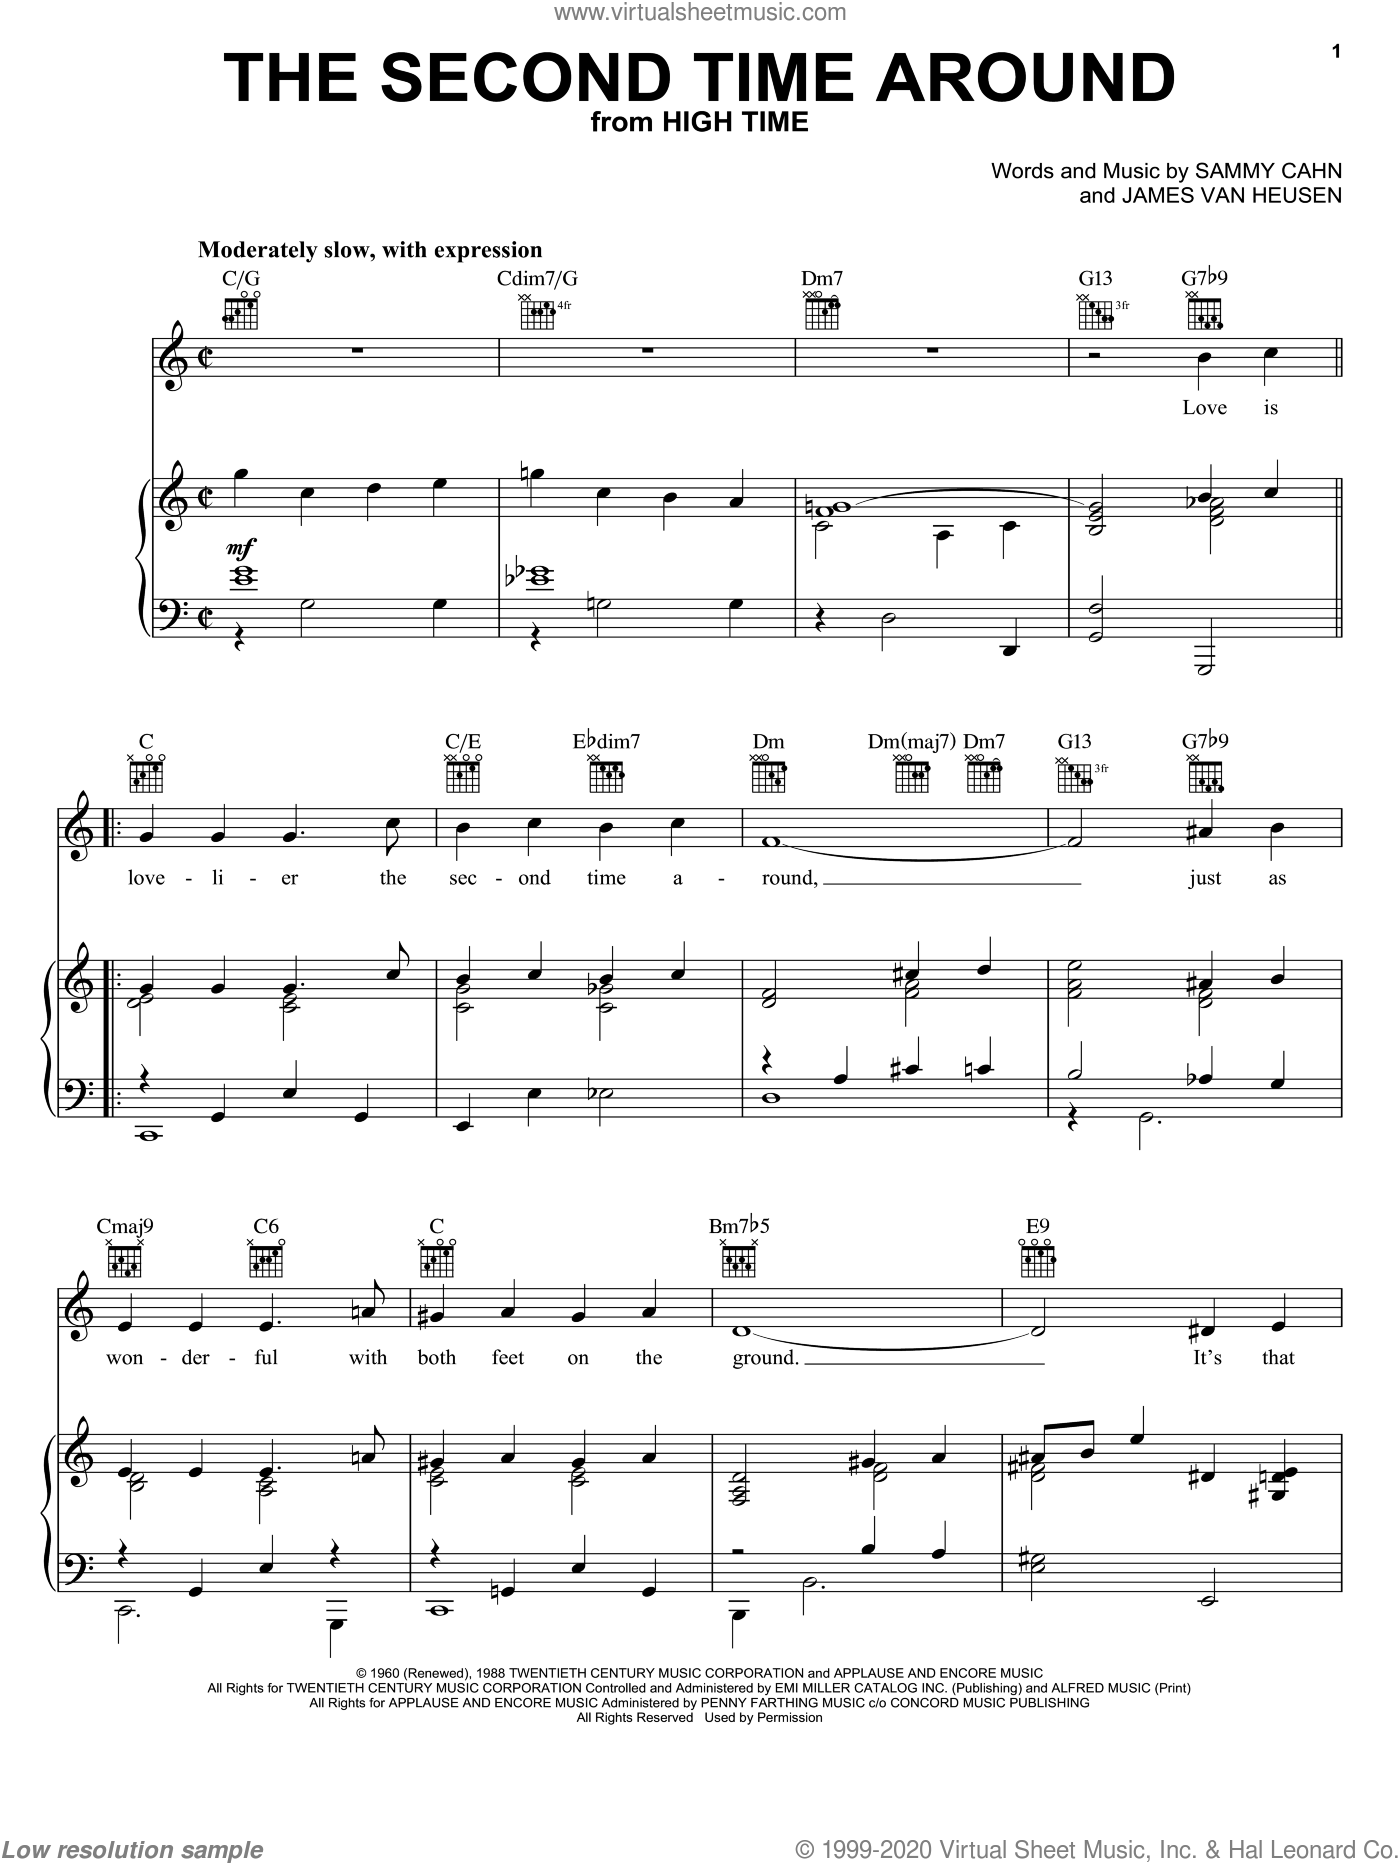 The Second Time Around sheet music for voice, piano or guitar by Sammy Cahn